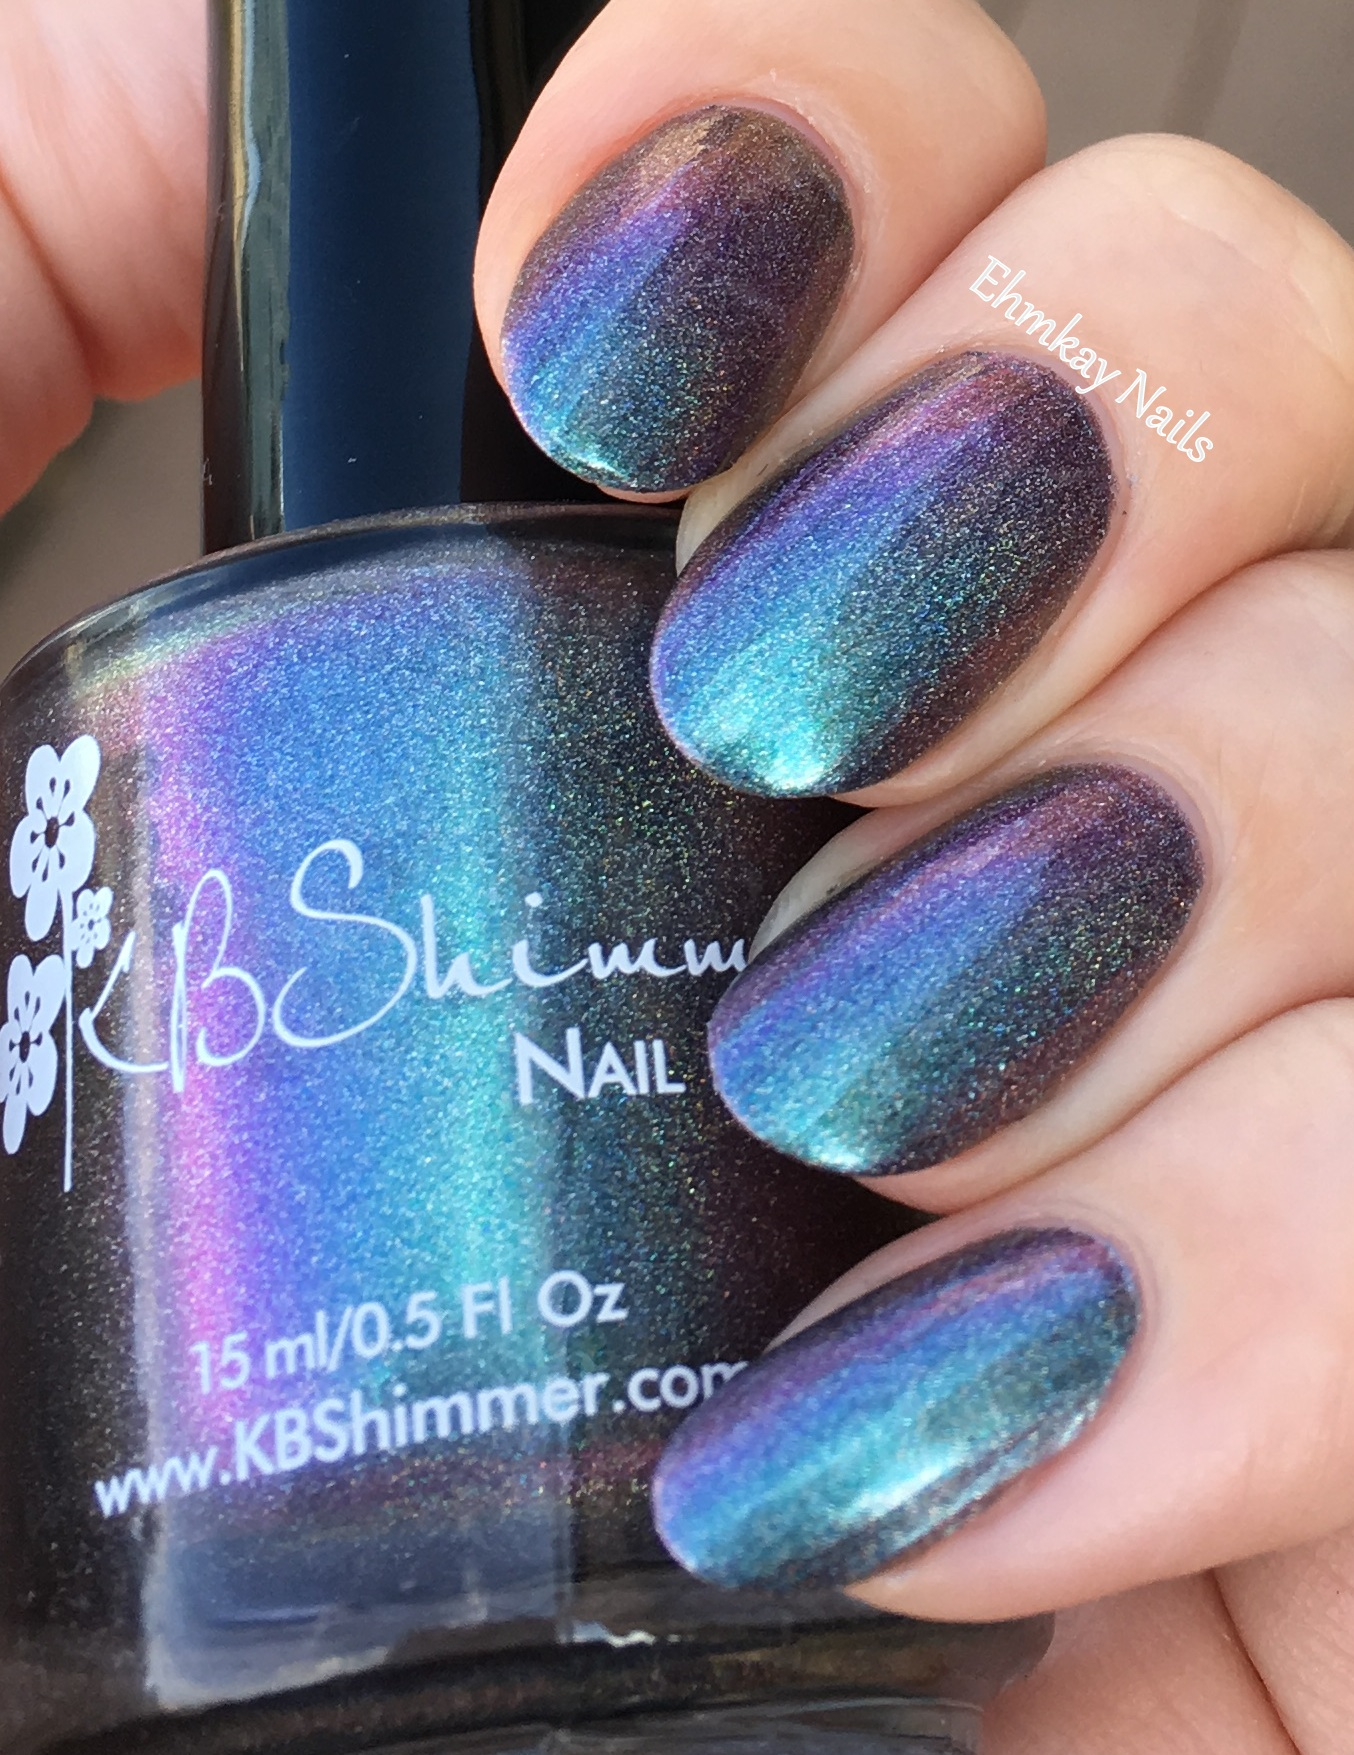 KBShimmer Hella Holo Customs KBShimmer None Of Your Bismuth 11